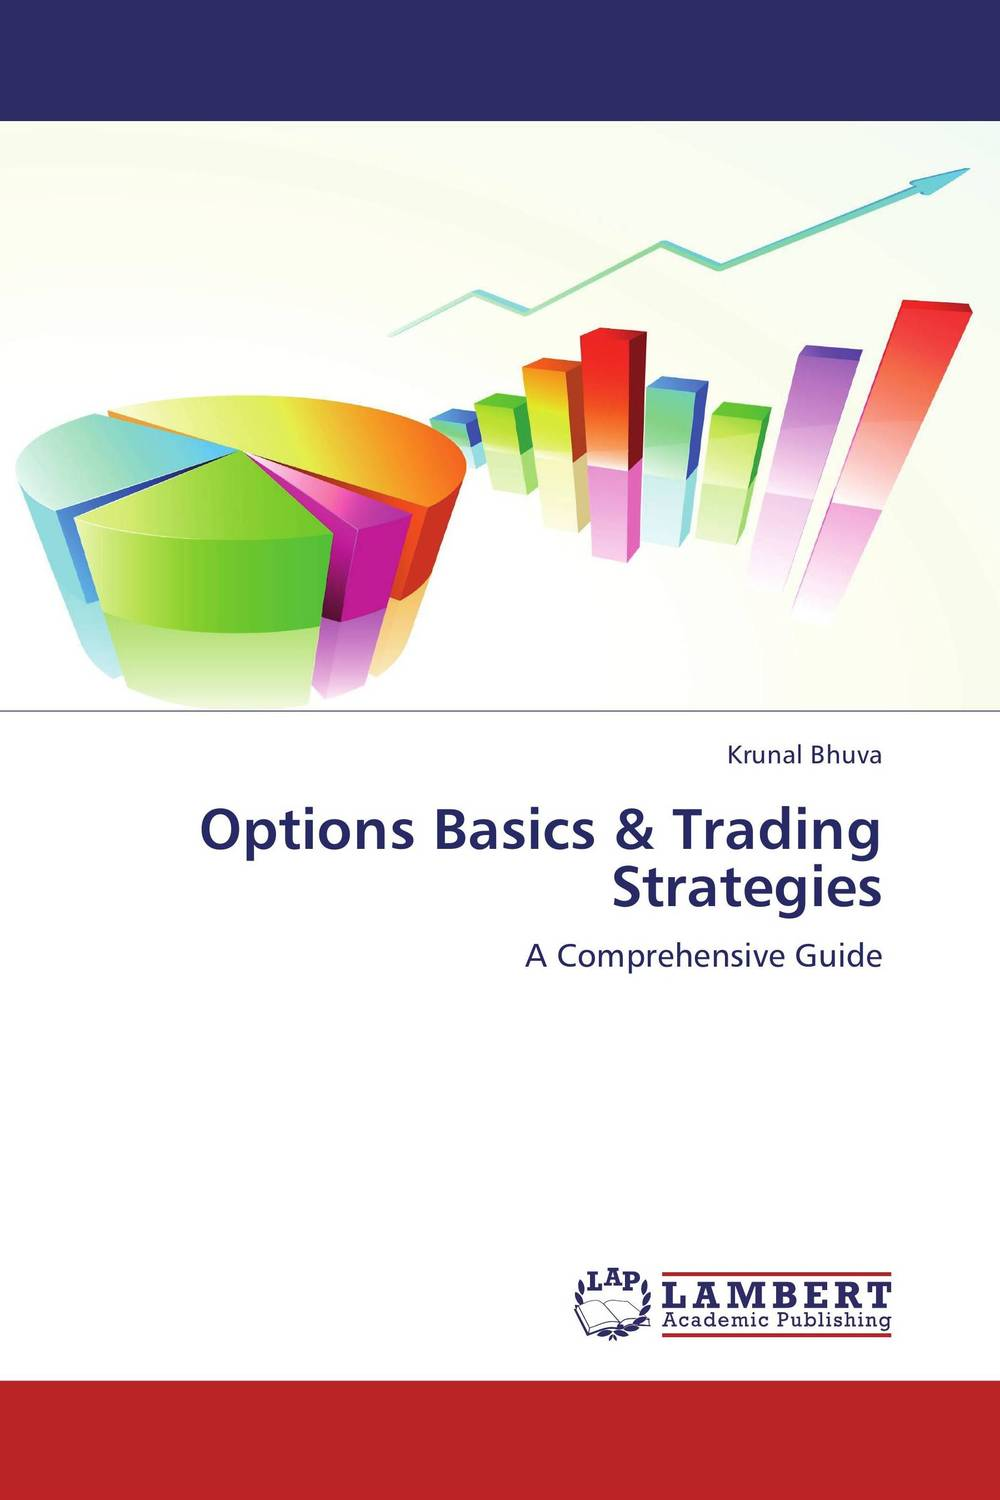 Options Basics & Trading Strategies jon najarian how i trade options